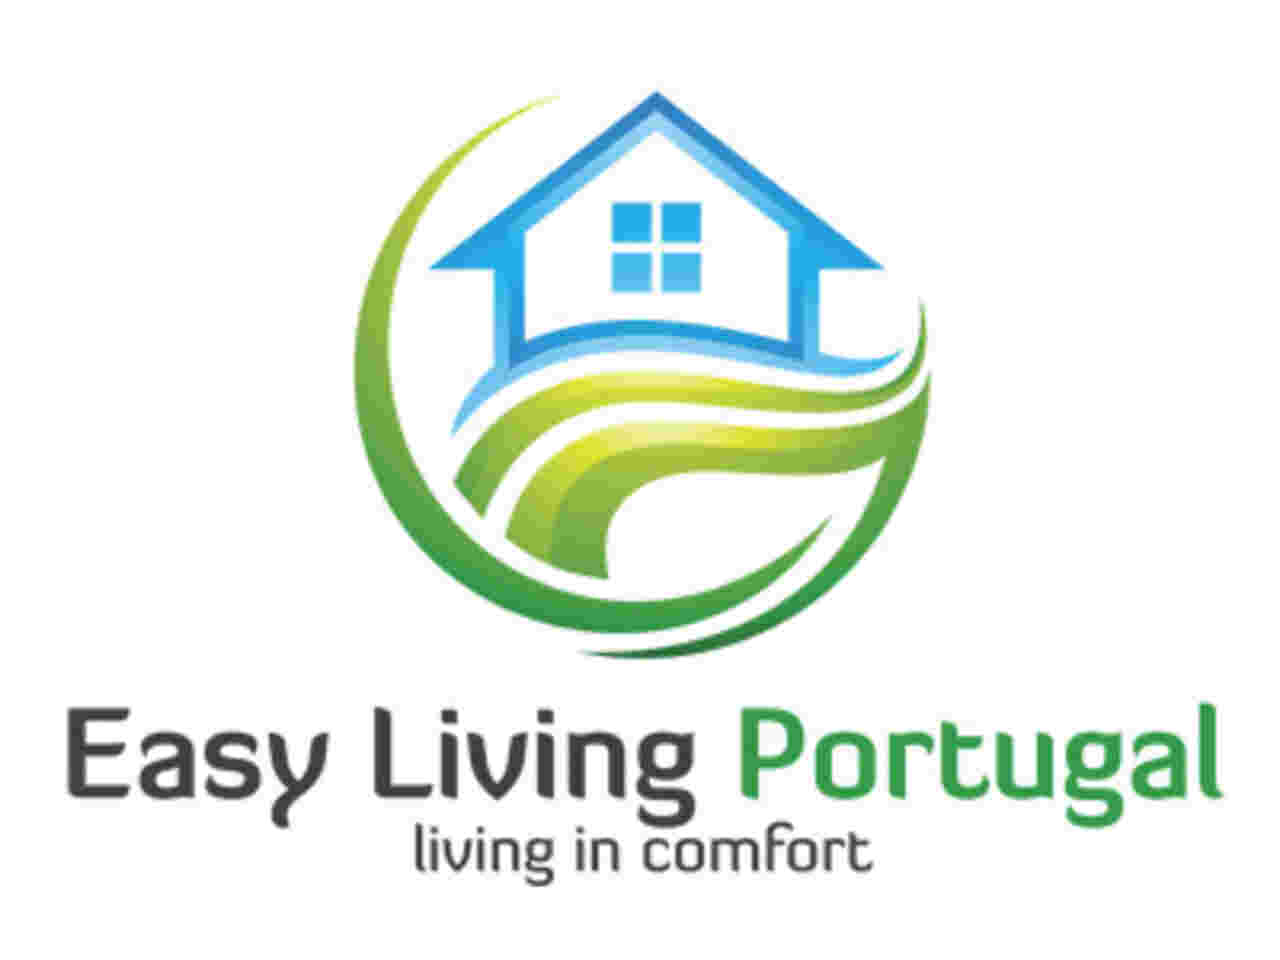 Easy Living Portugal